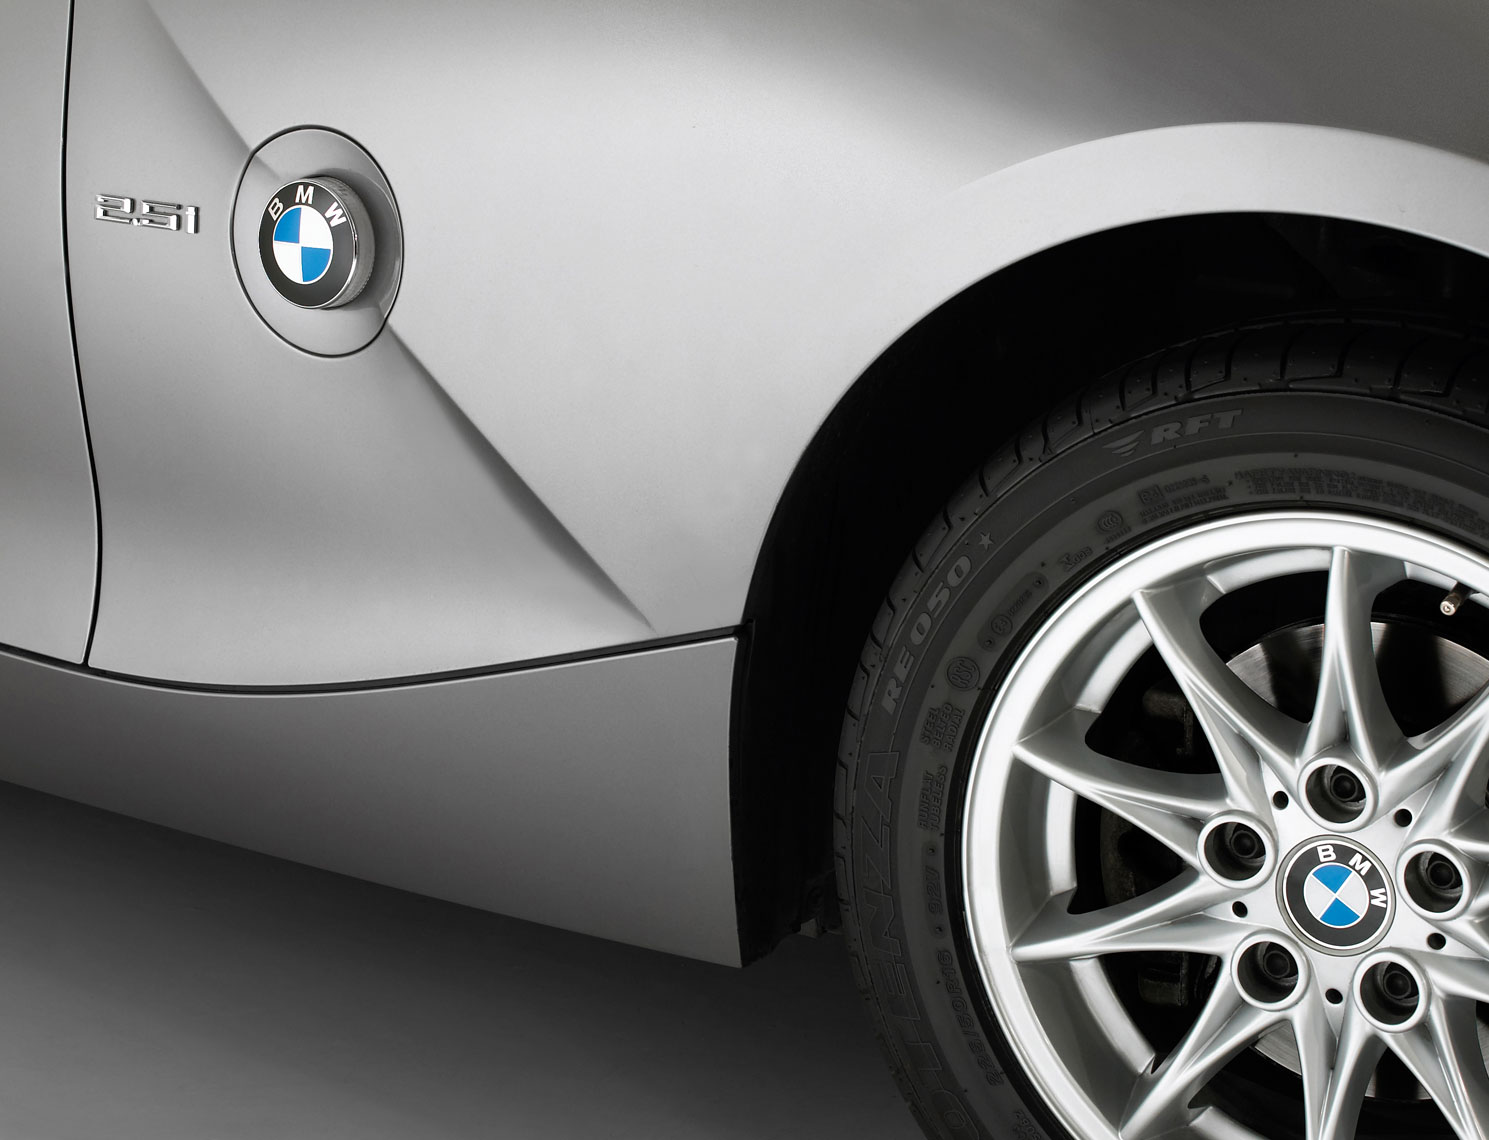 BMW/tire/silver/car/product photo/InsideOut Studios